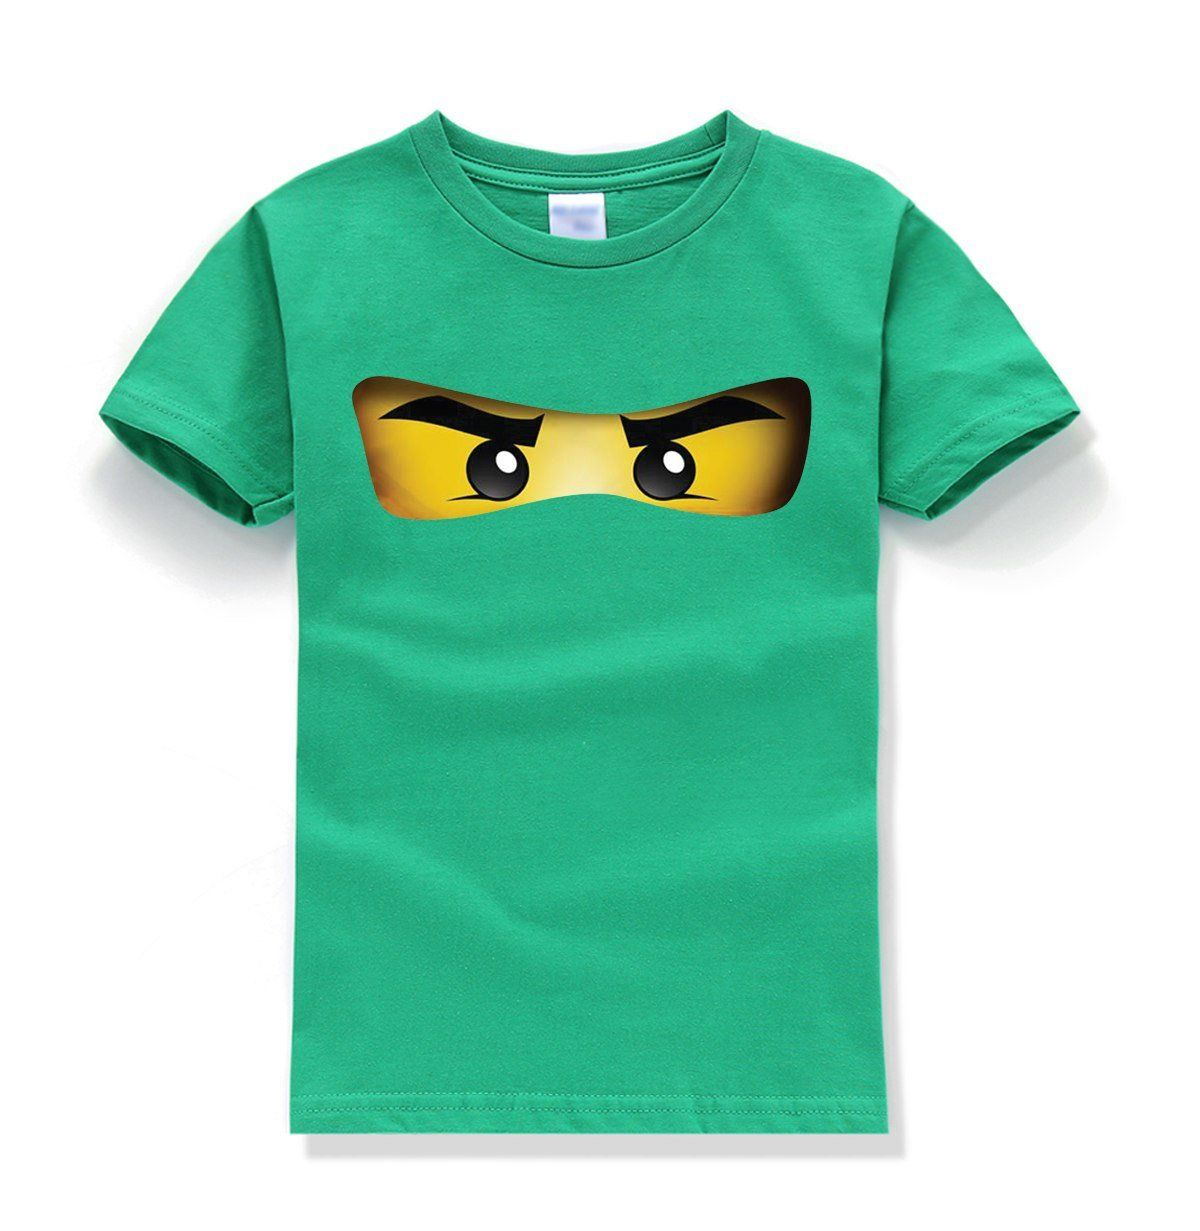 short sleeve t-shirts baby boys clothing high quality summer t-shirts - Your Baby's Closet